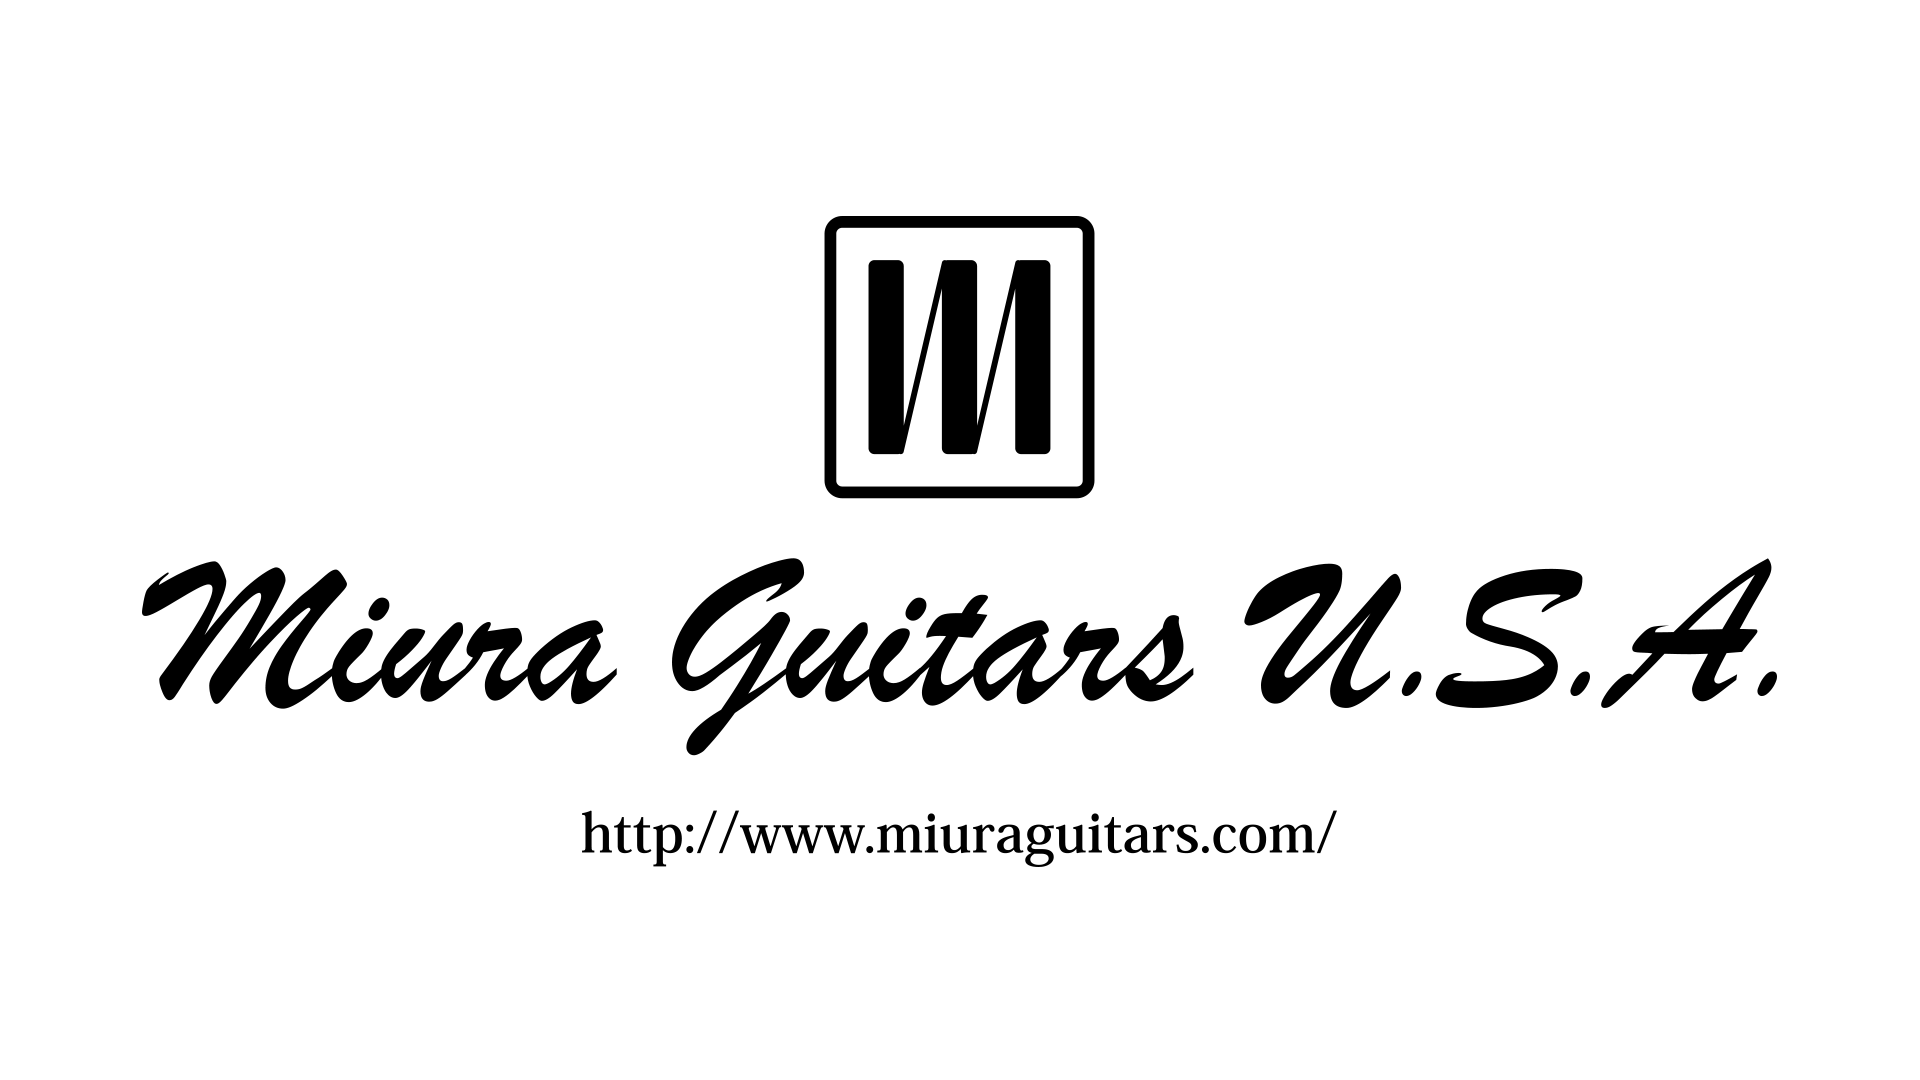 Miuta Guitars U.S.A